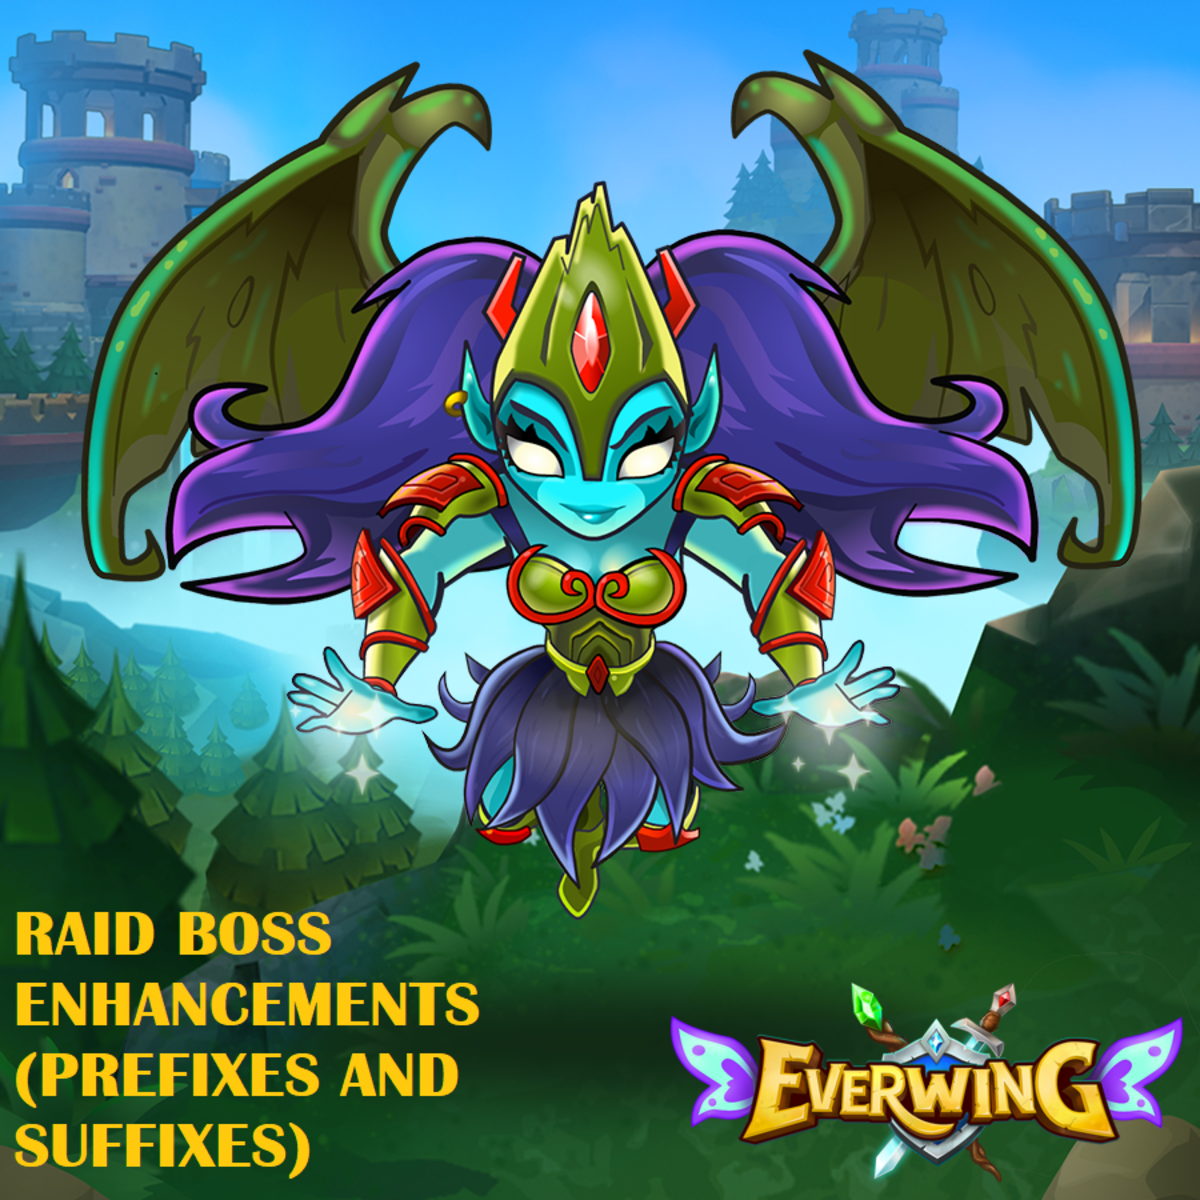 EverWing Raid Boss Enhancements (Prefixes and Suffixes)